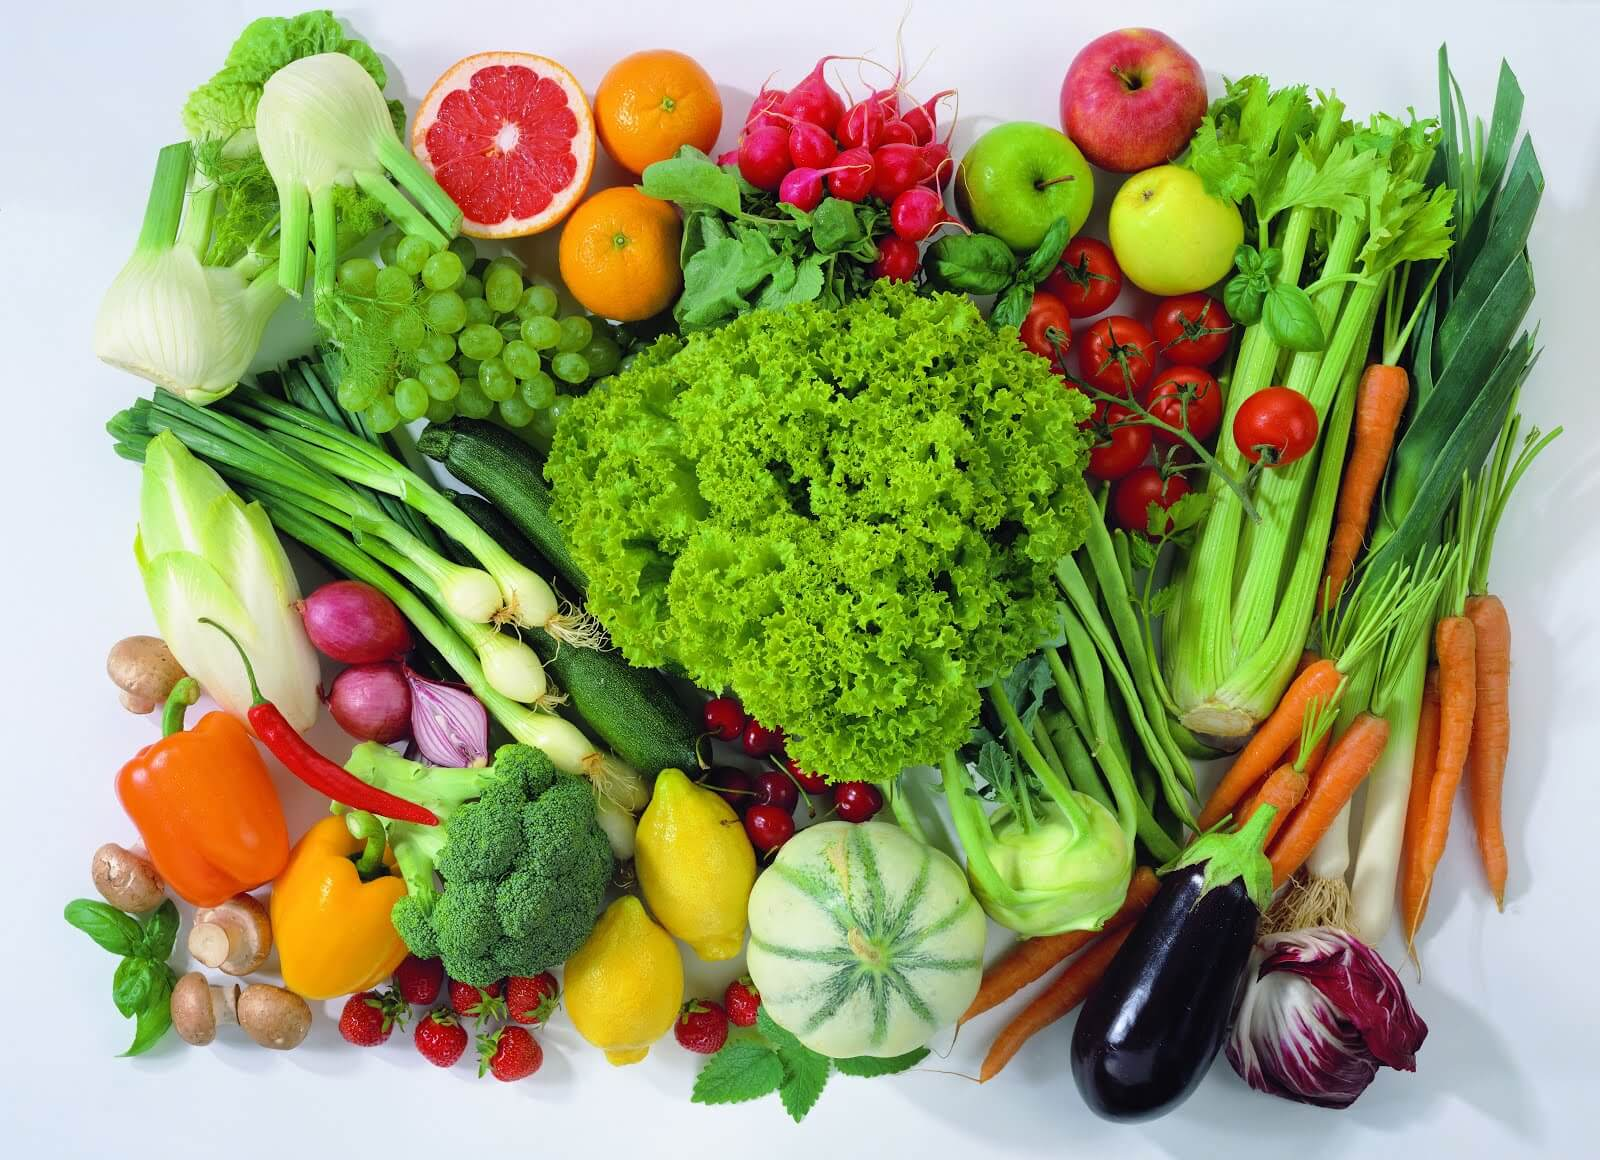 7 Cancer Fighting Fruits and Vegetables That You Should Consume Regularly